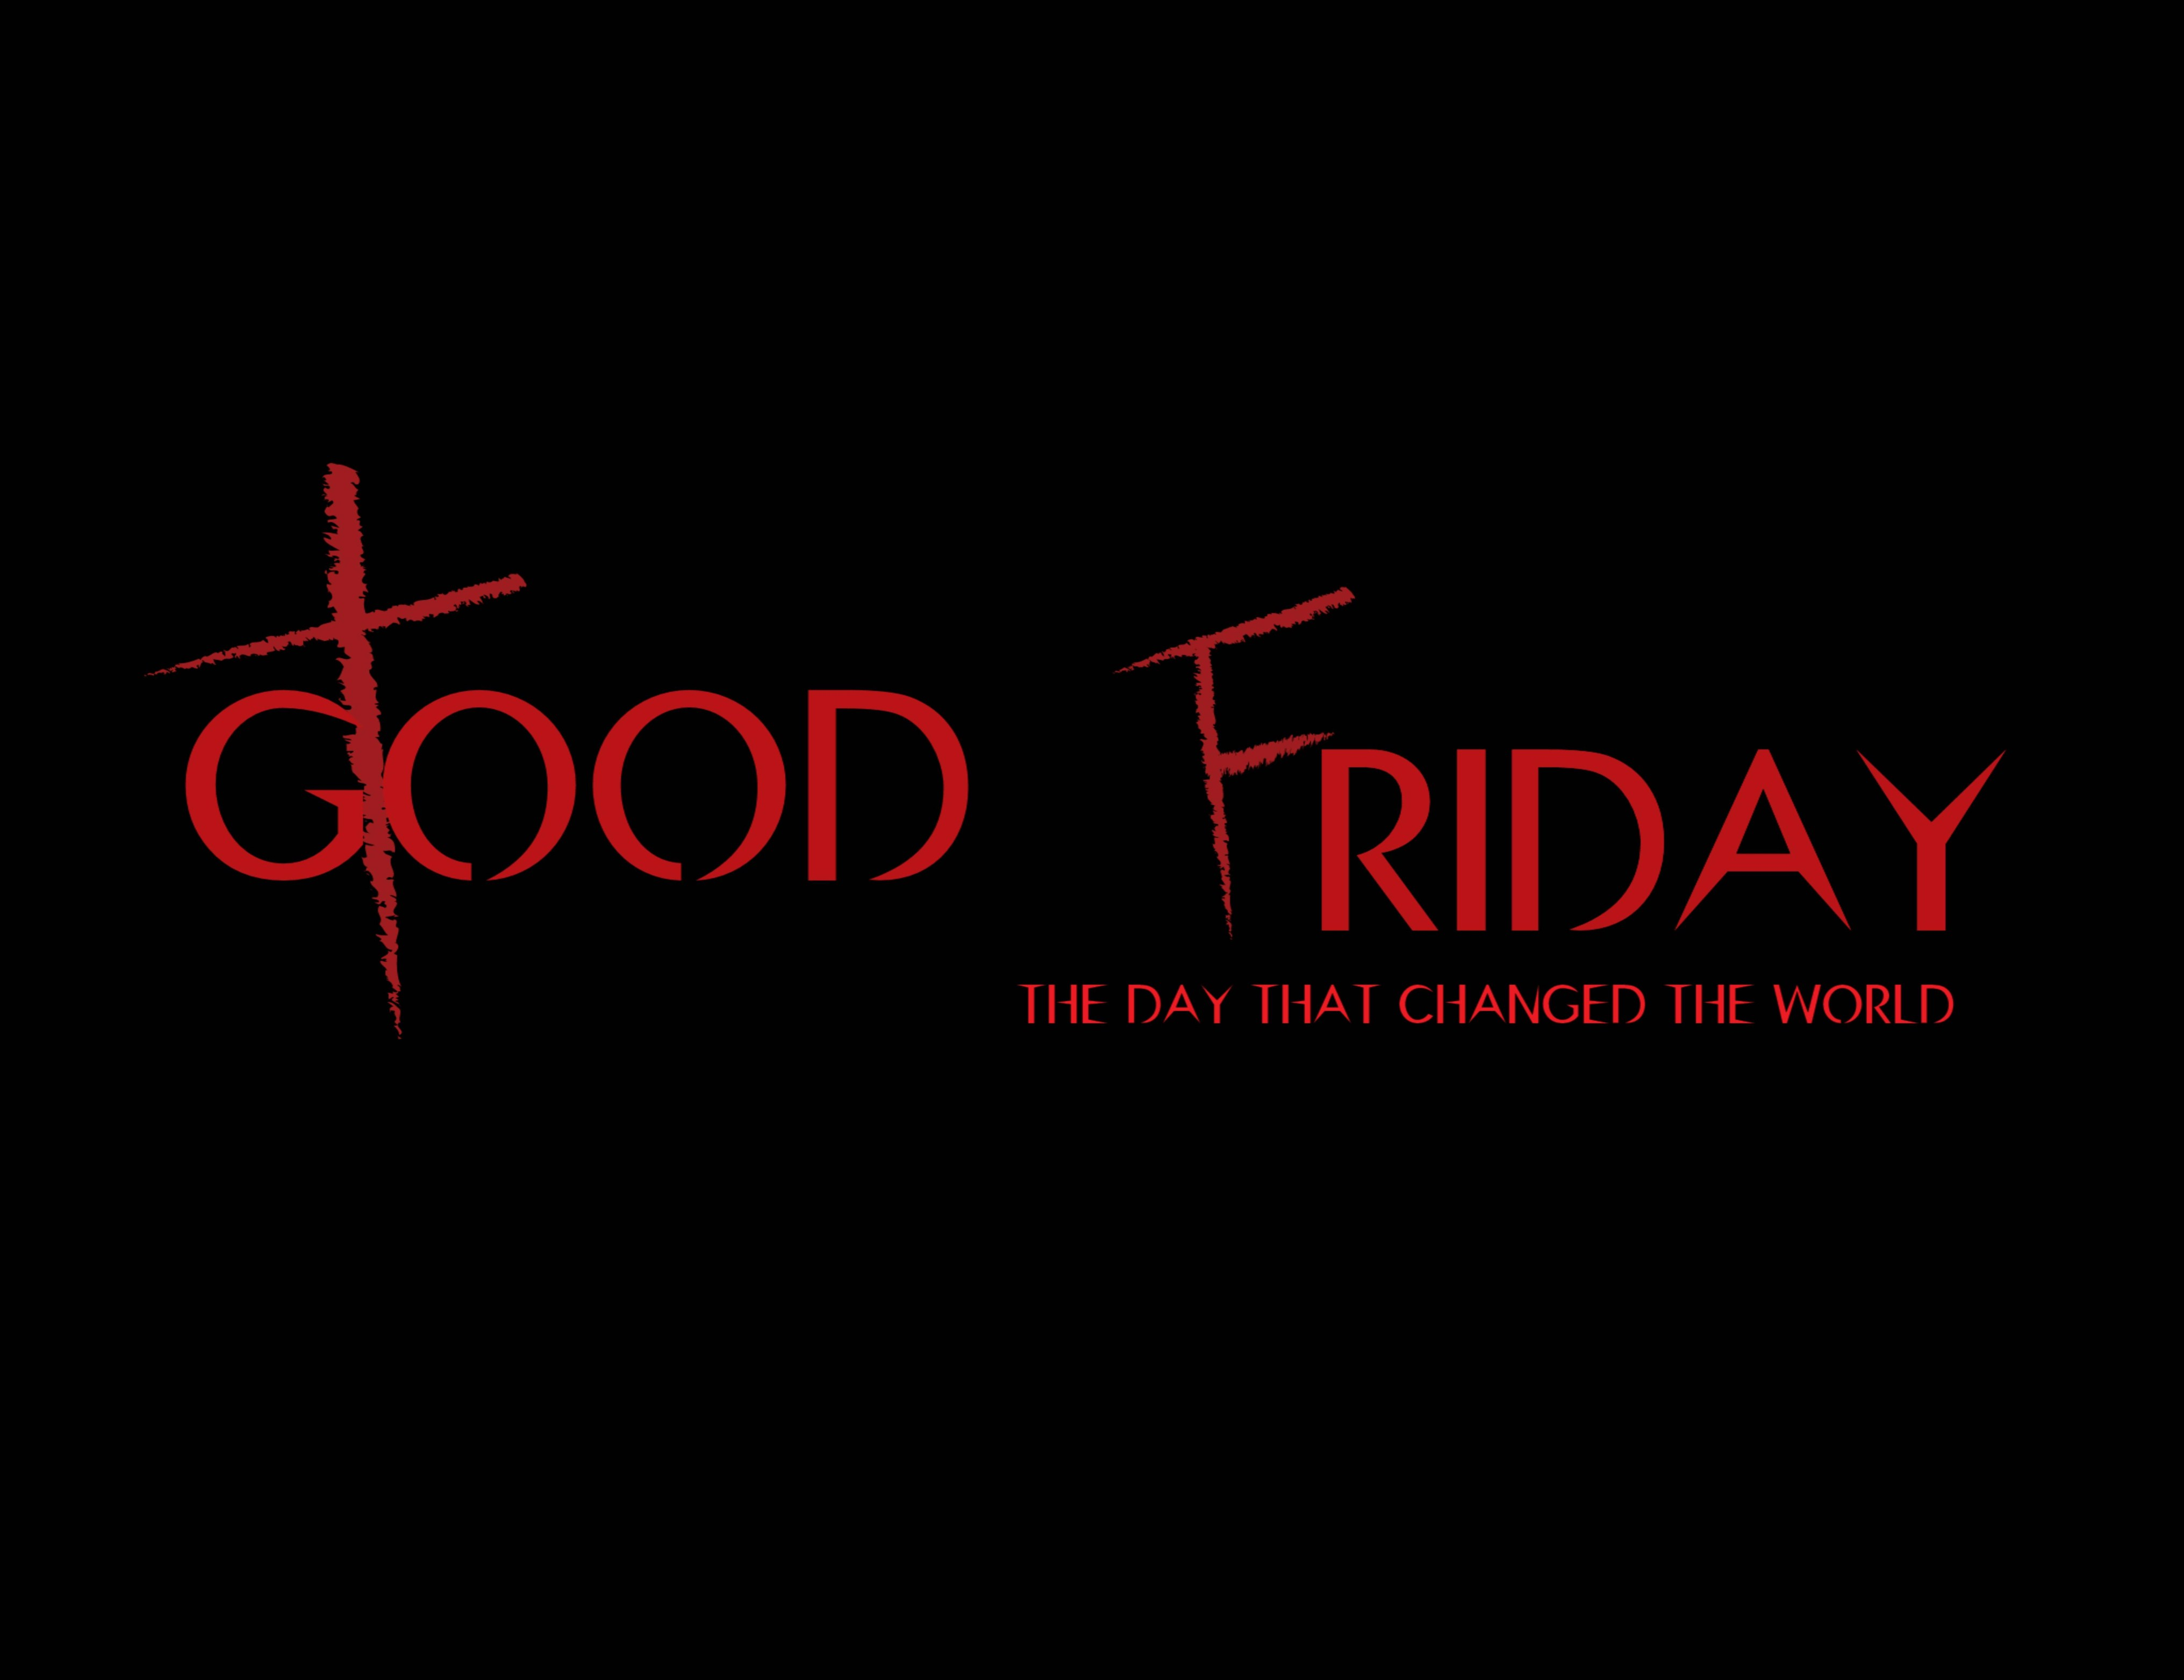 Good Friday The Day That Changed The World